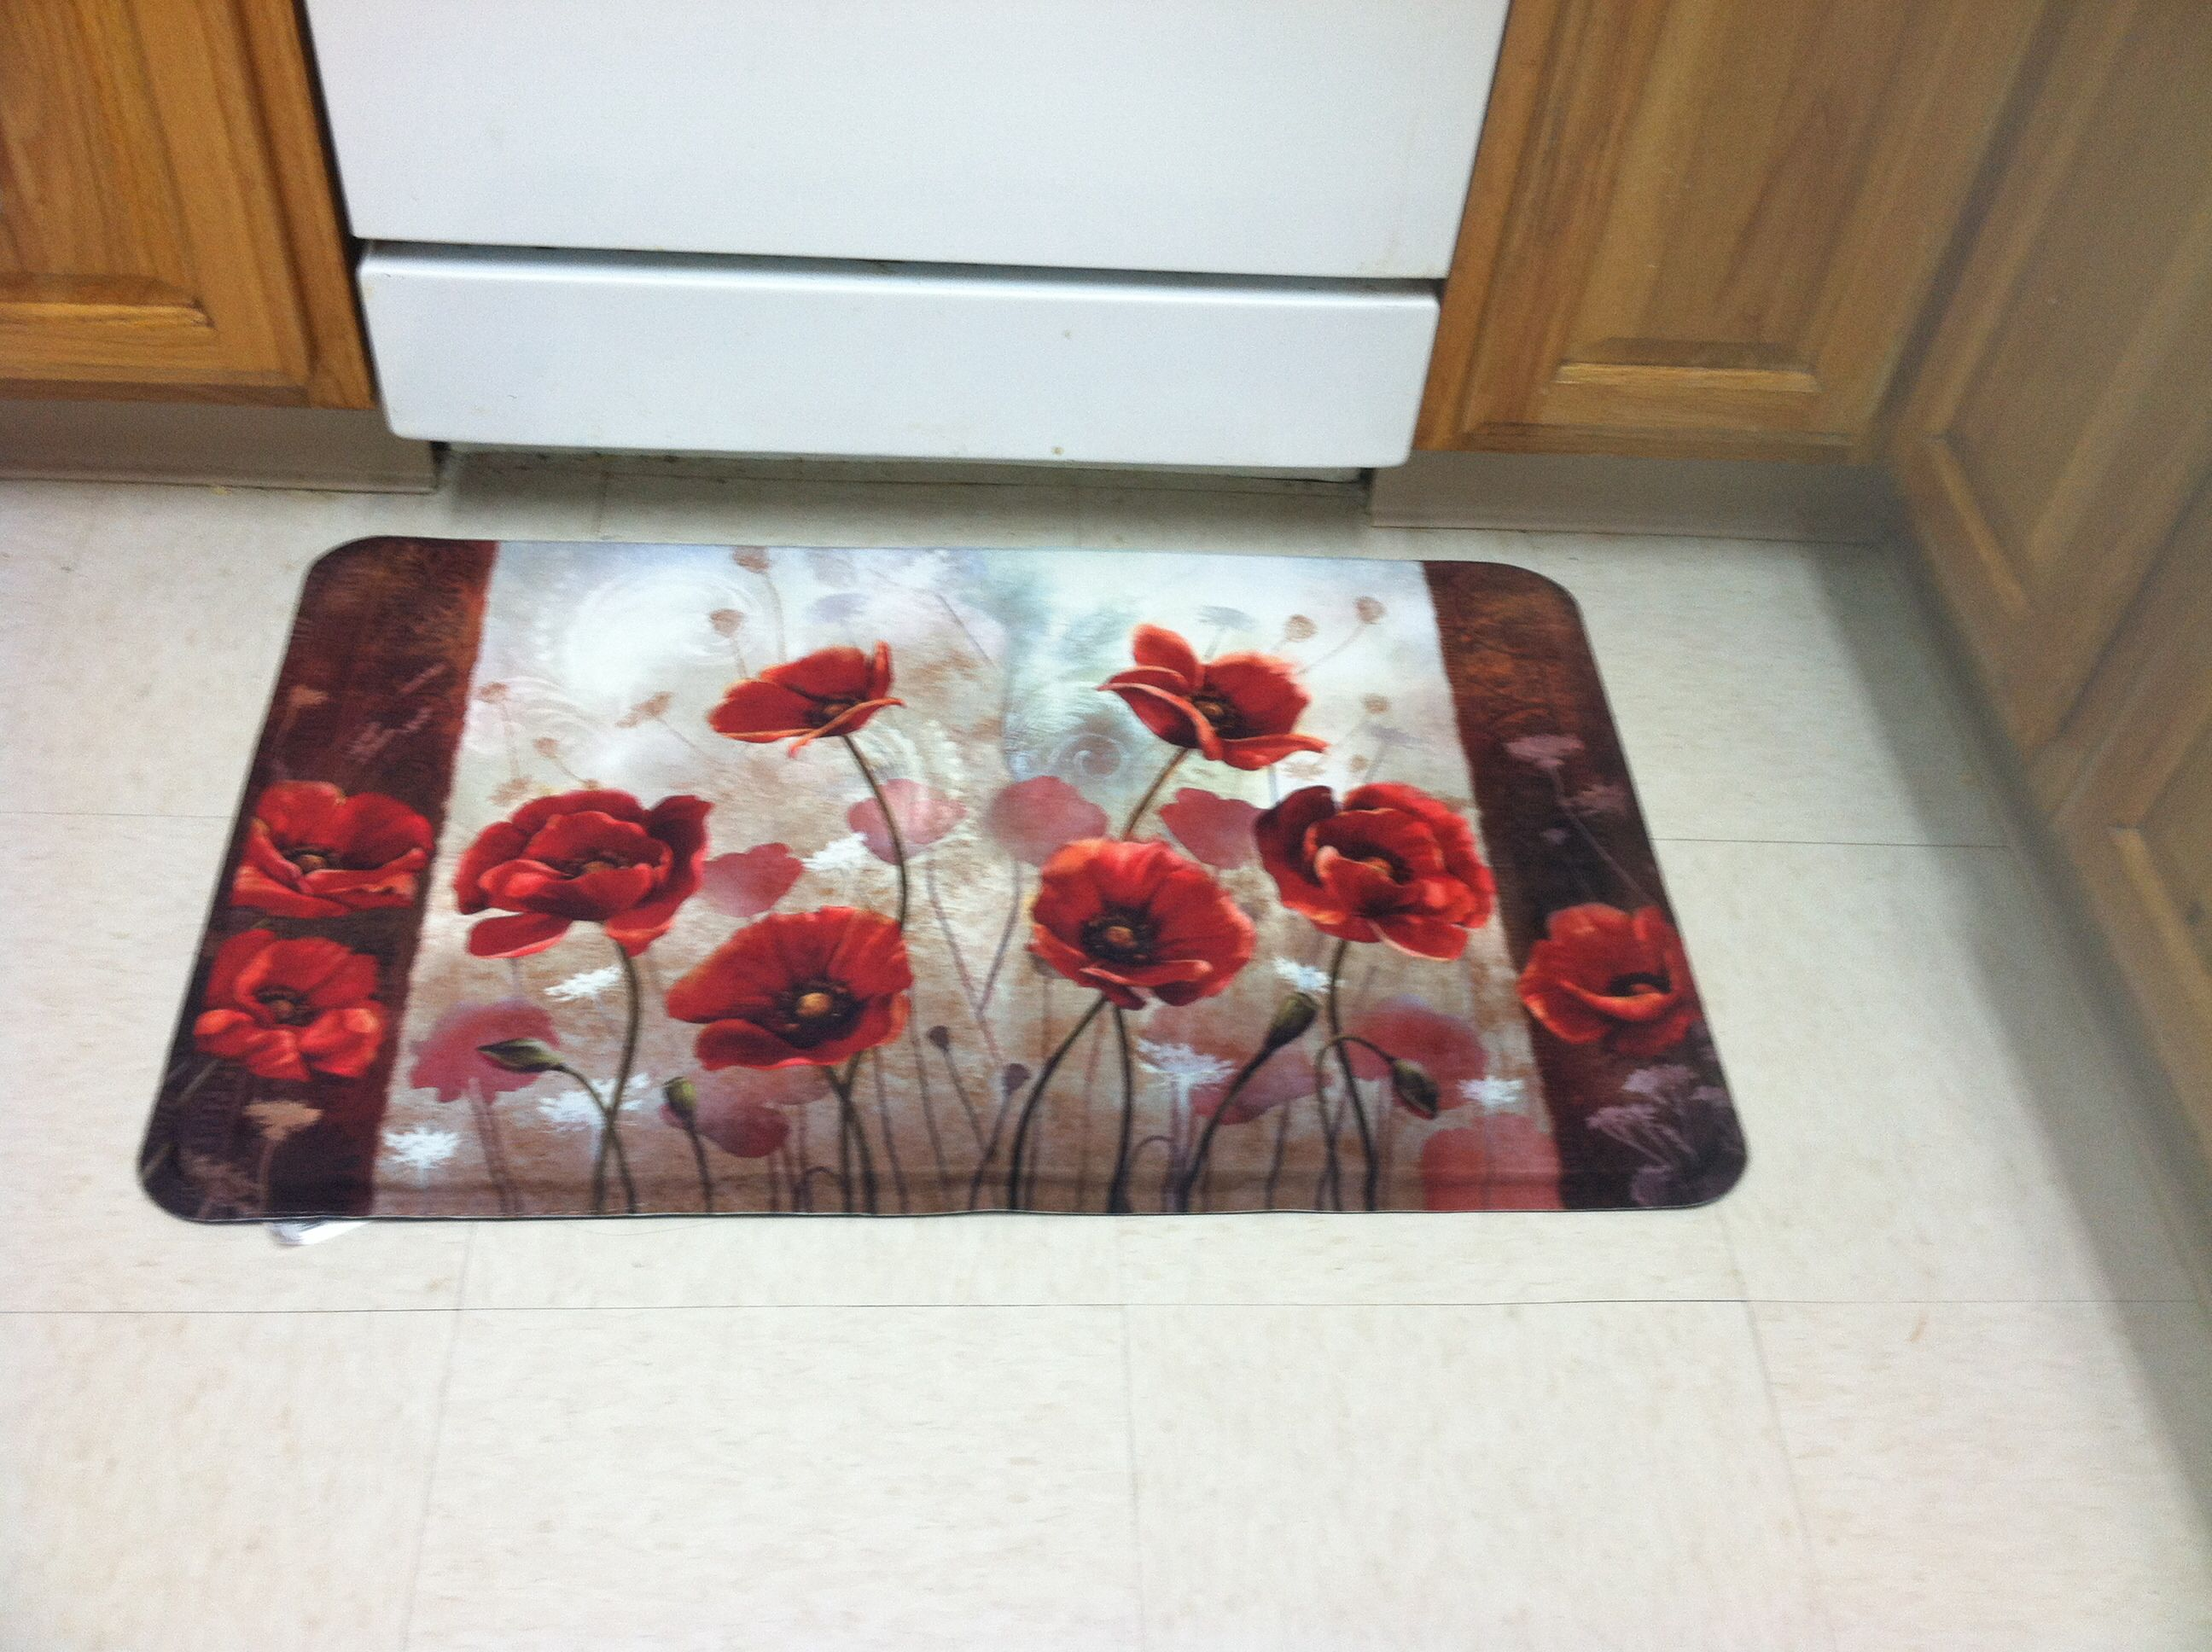 Charmant Poppy Kitchen Mat From Bed Bath And Beyond